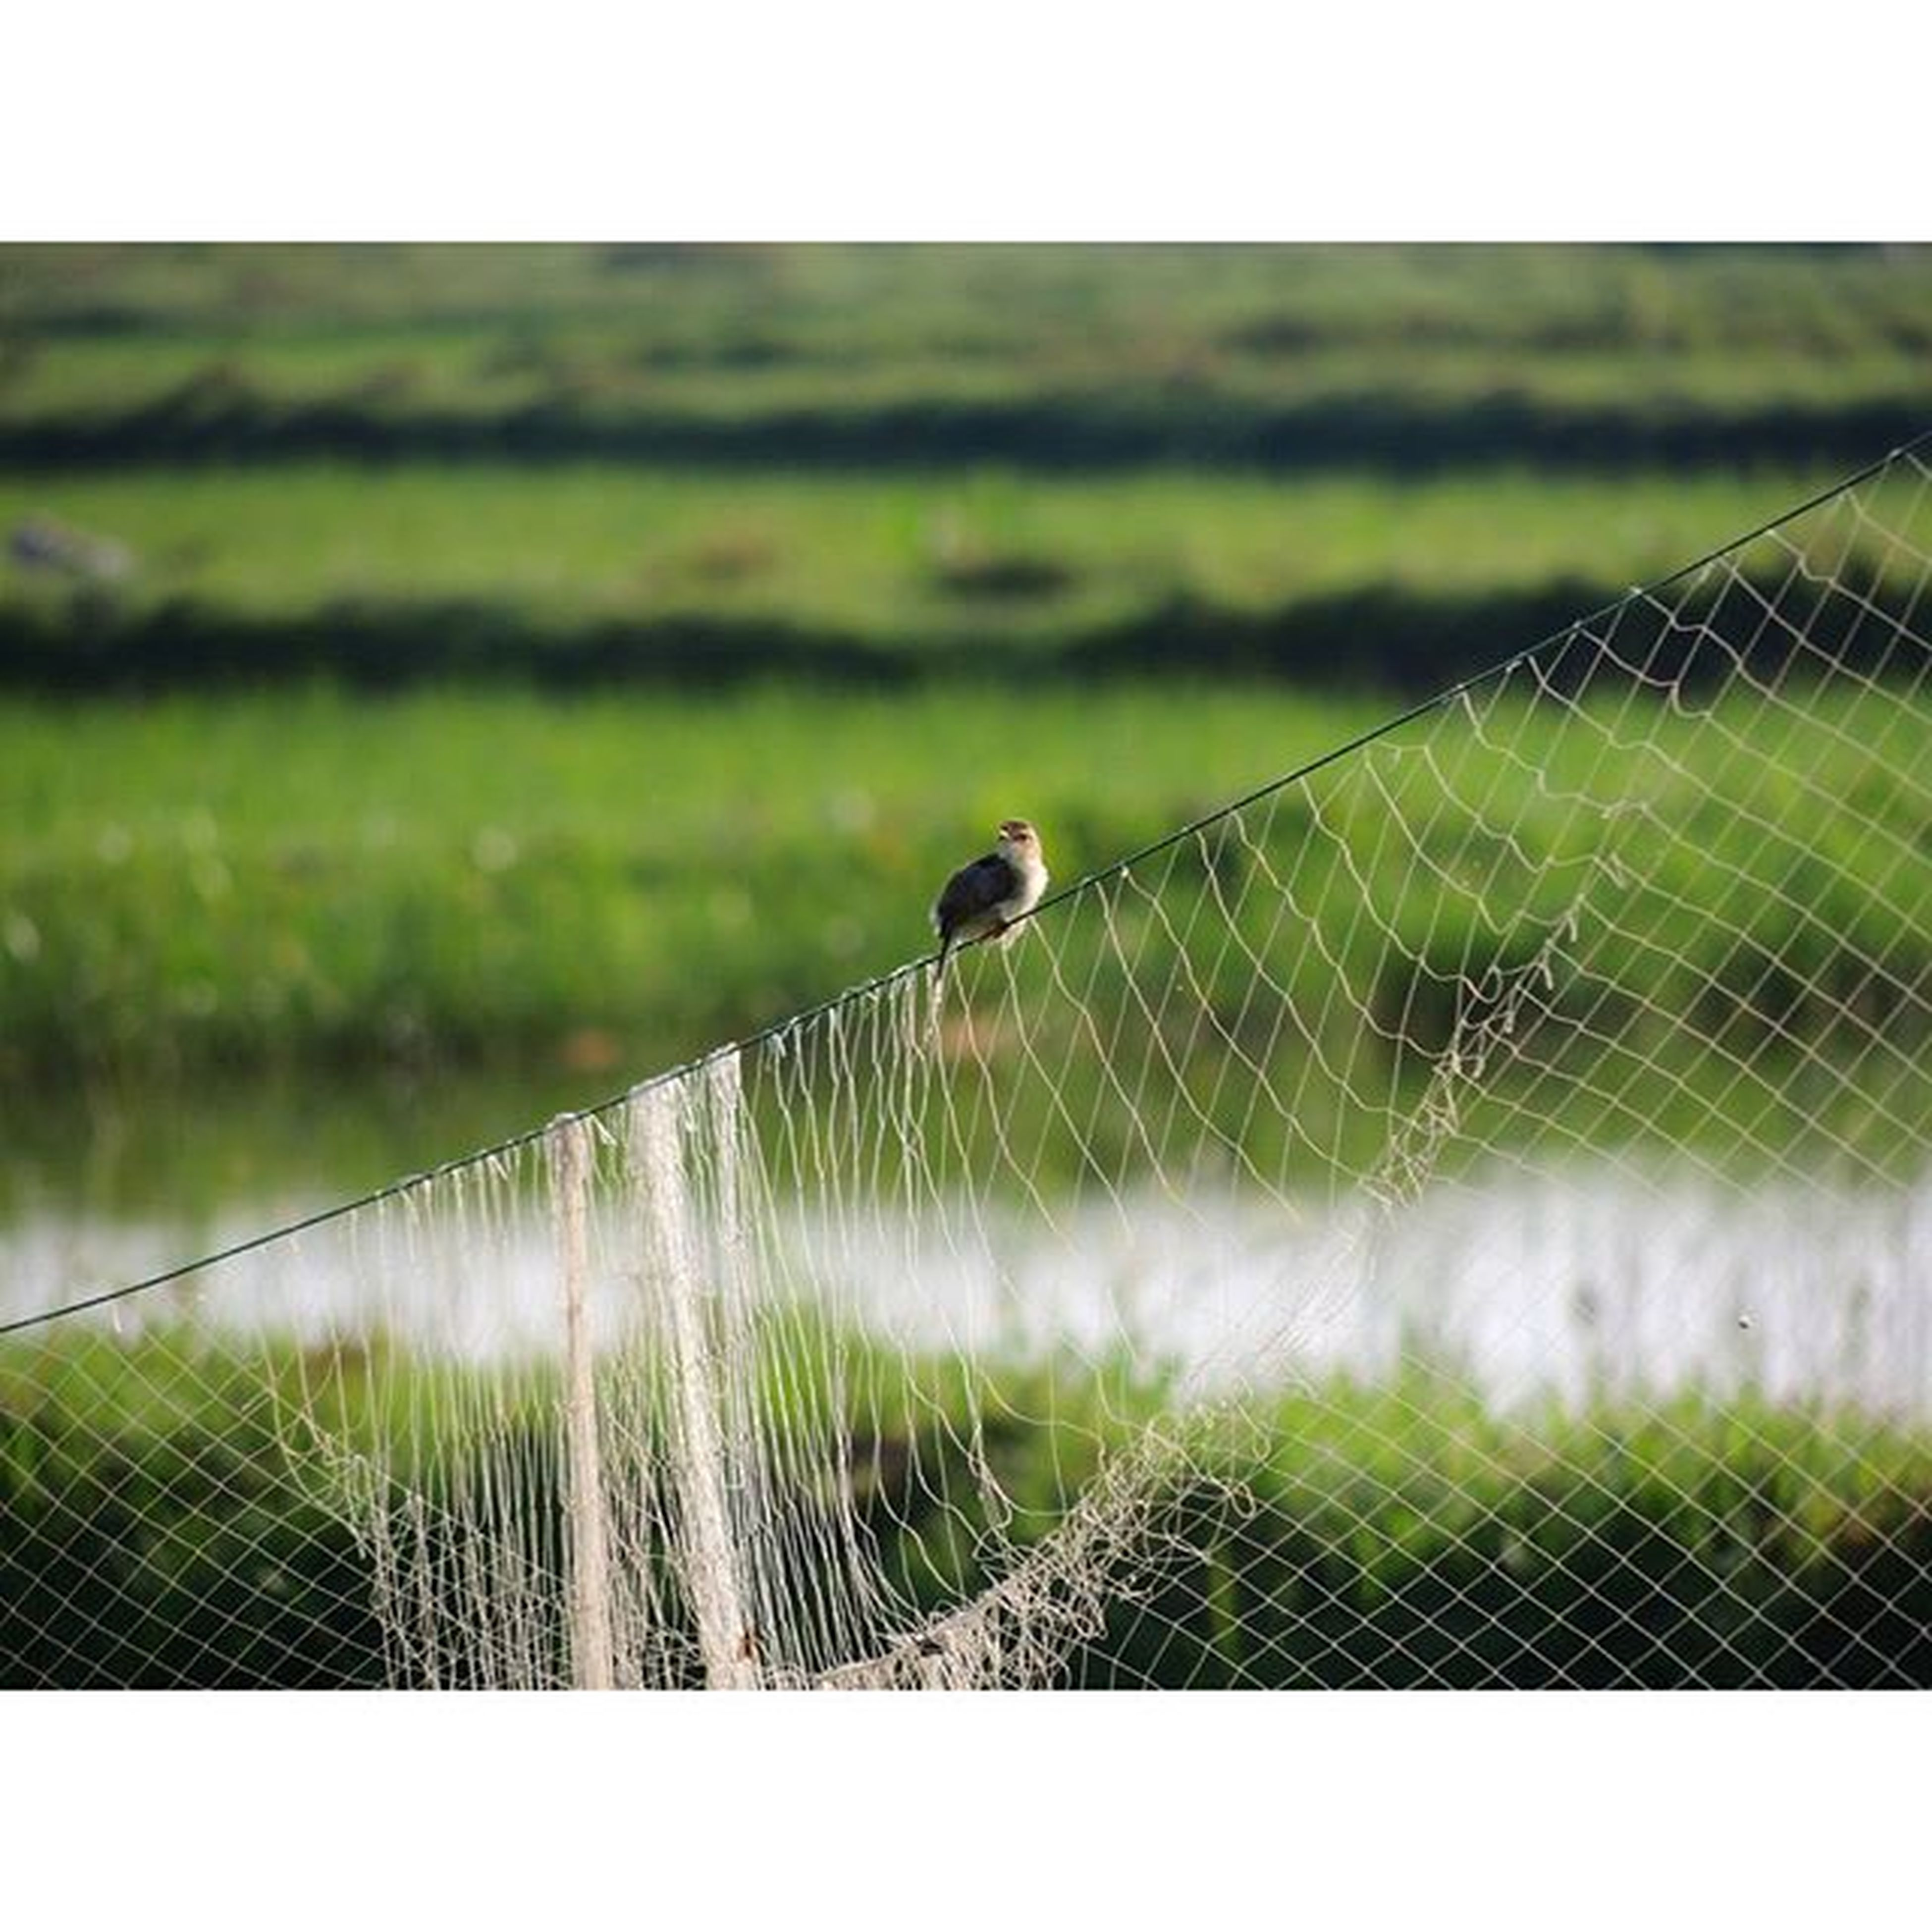 transfer print, grass, auto post production filter, fence, field, focus on foreground, green color, nature, animal themes, growth, plant, close-up, grassy, protection, day, outdoors, no people, chainlink fence, wildlife, beauty in nature